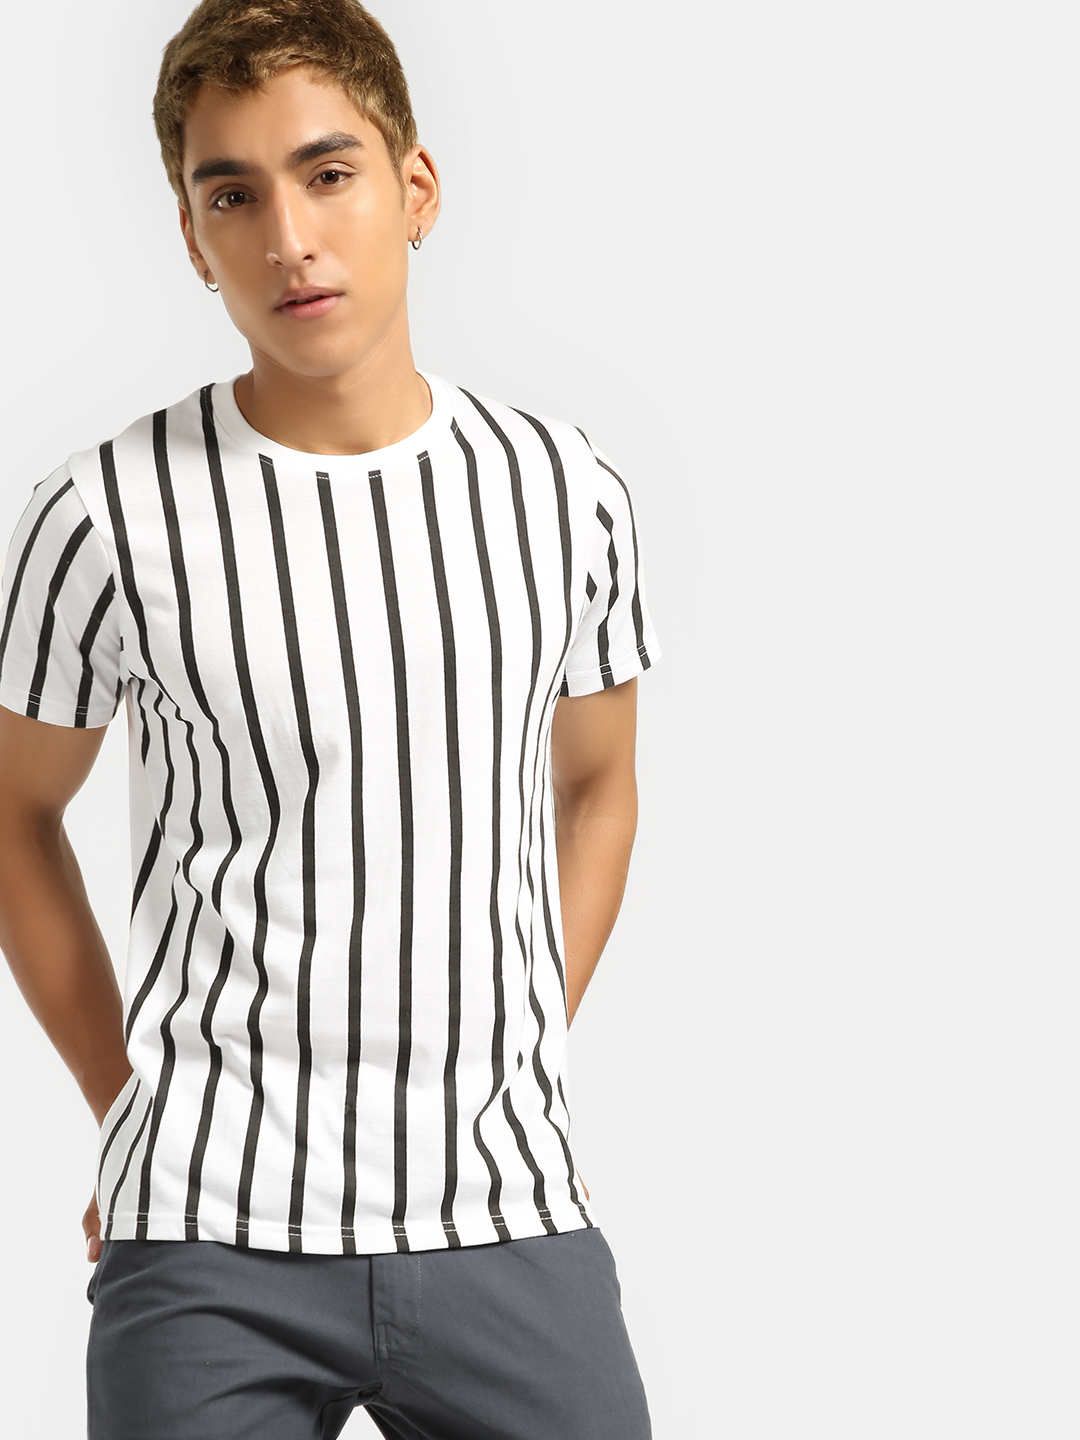 Blotch White Vertical Stripe Crew Neck T-Shirt 1